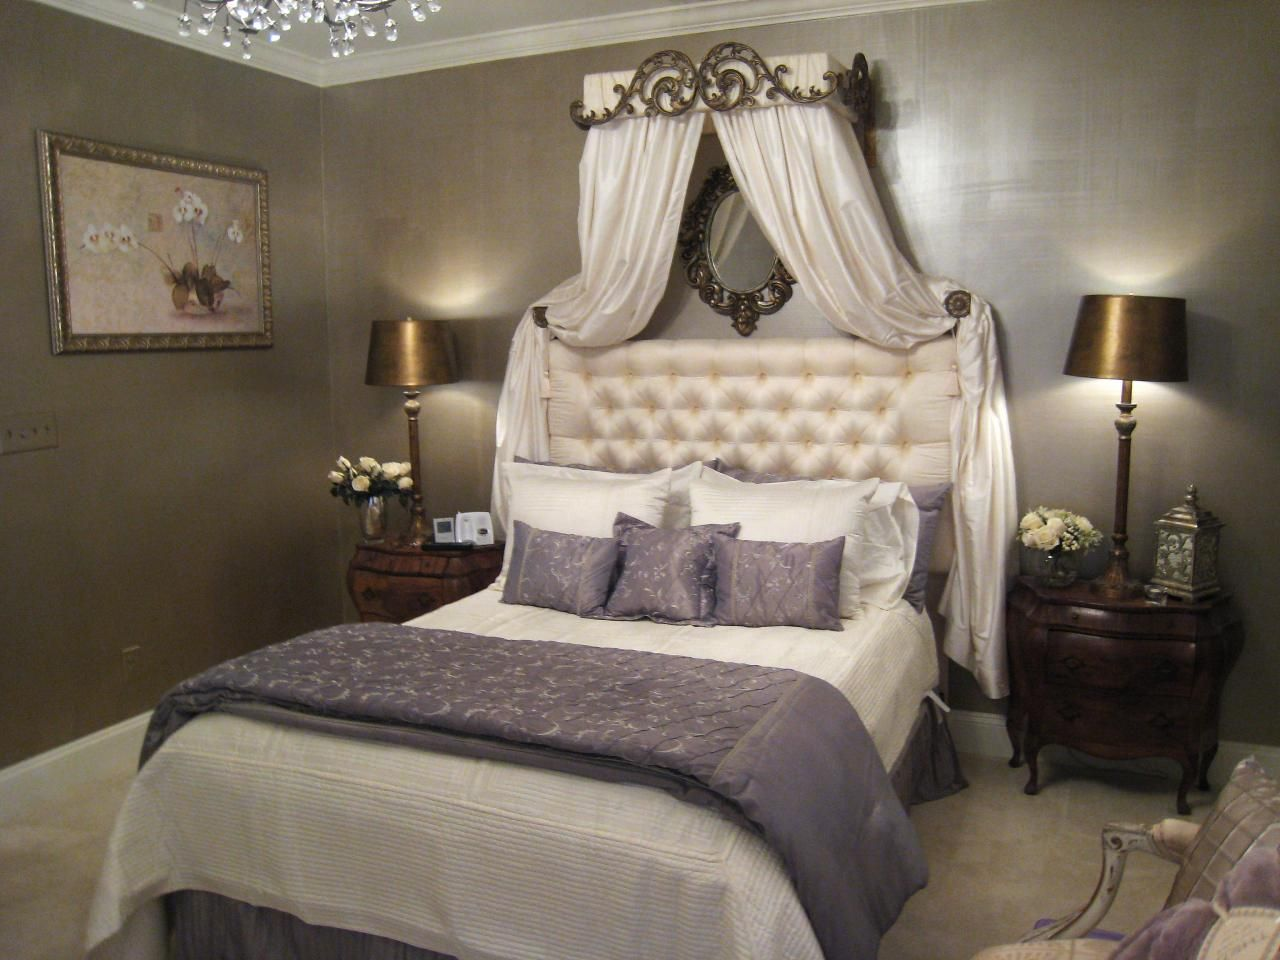 Bed Crown Design Ideas Home Bedroom Decor Bed Crown